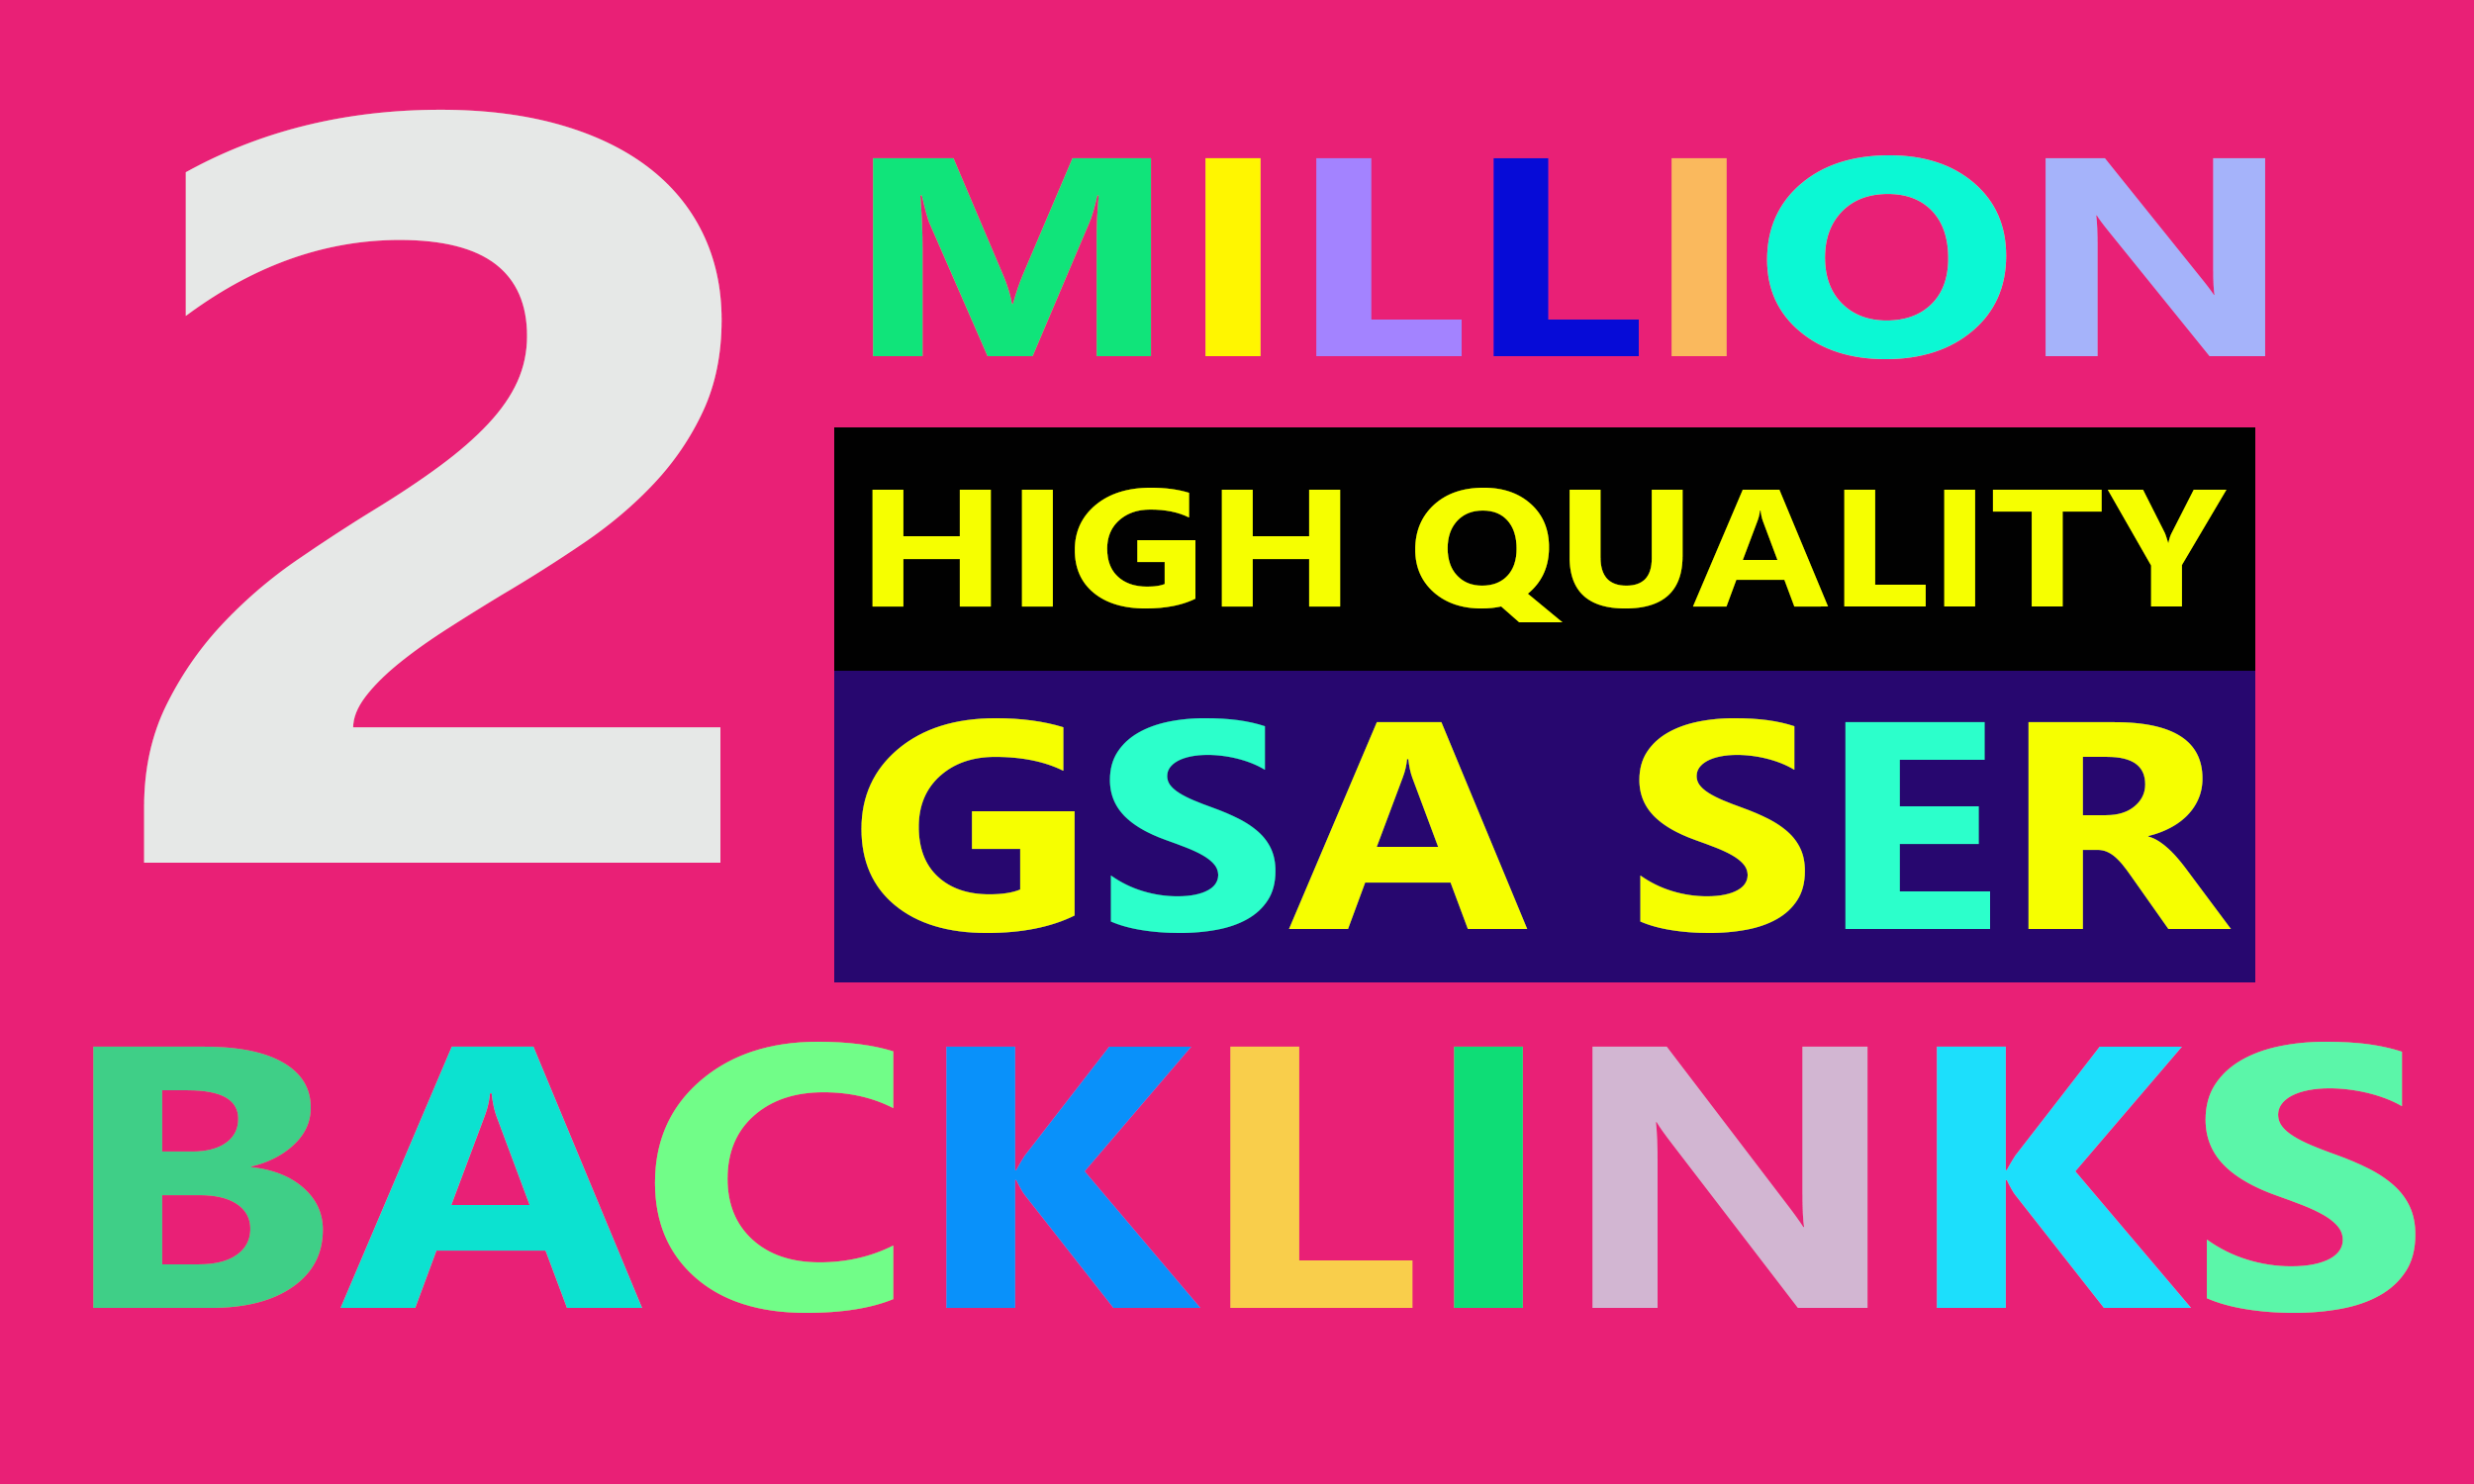 2 Million High Quality GSA SER Backlinks and Rank your website